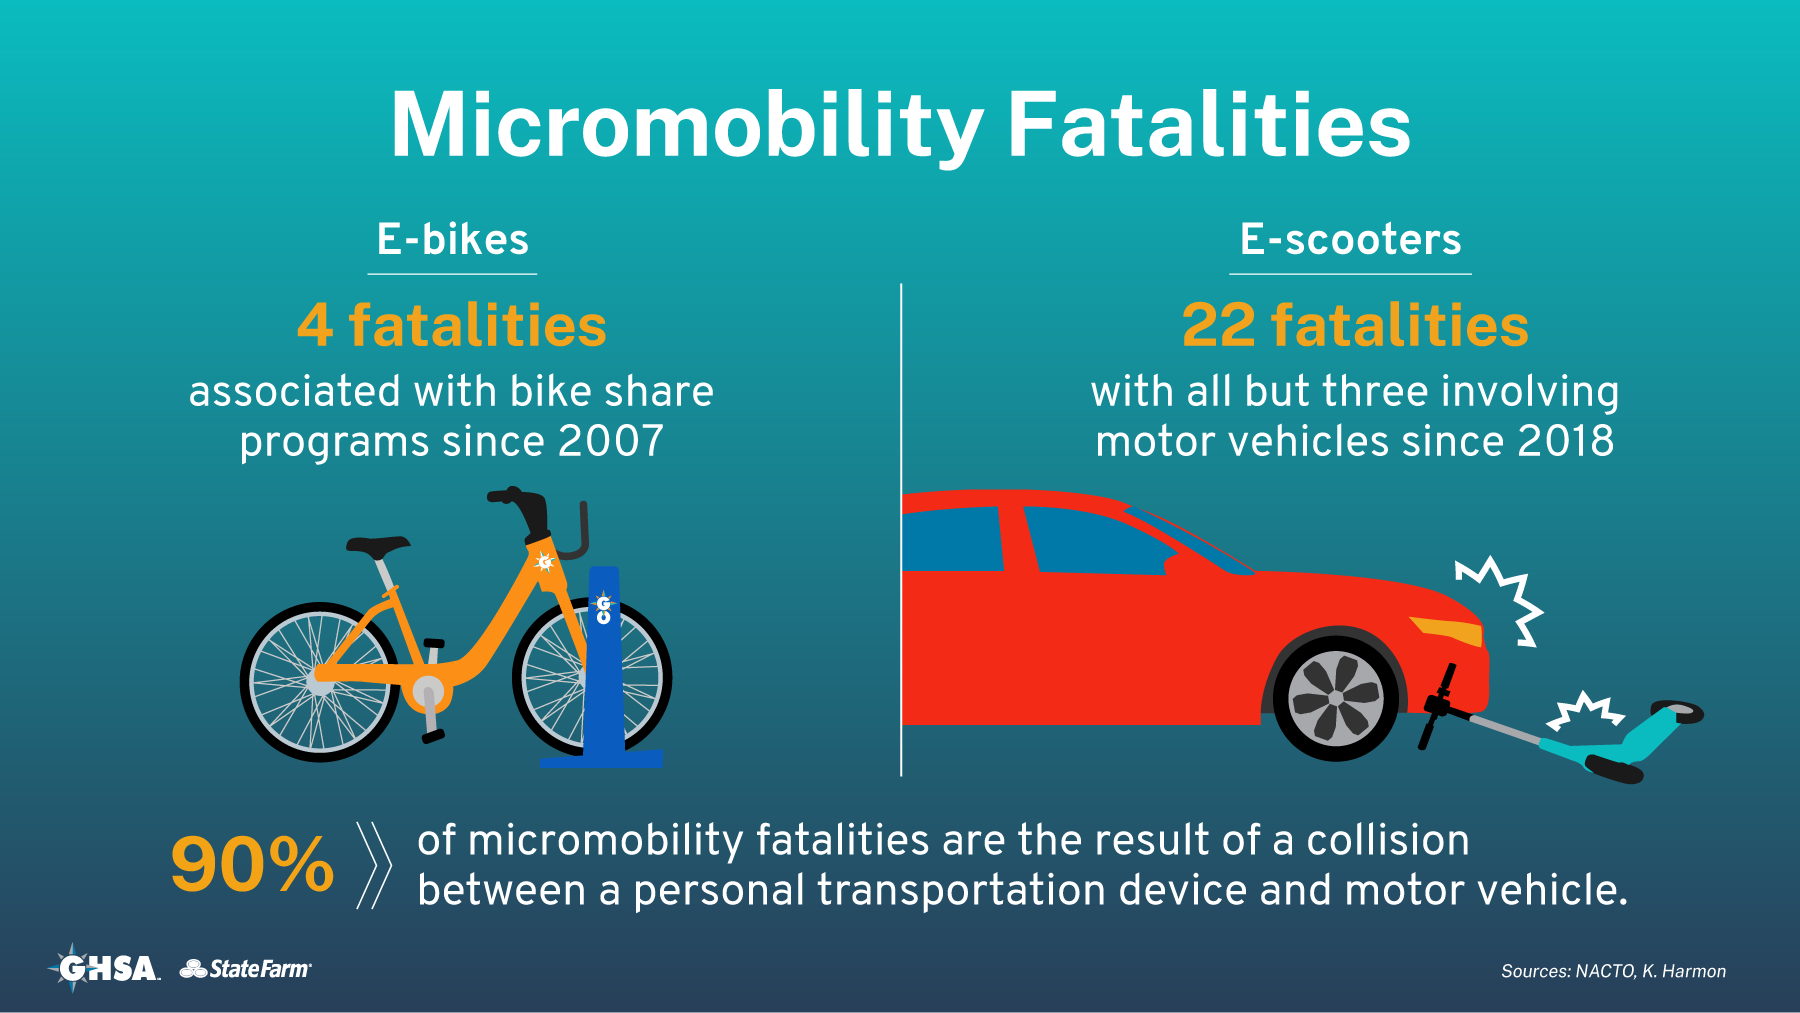 Micromobility Fatalities